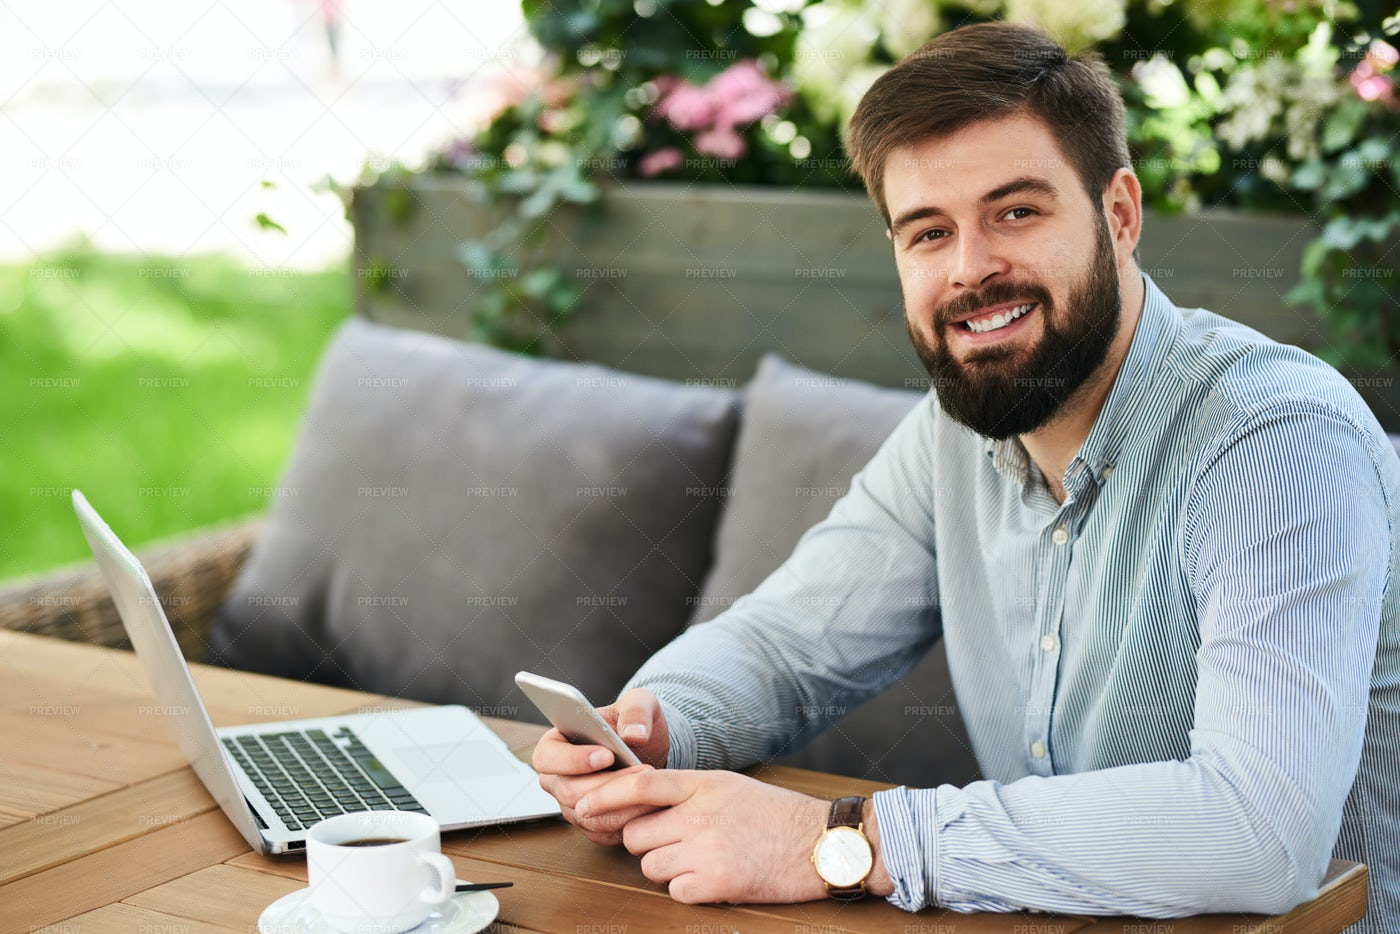 Smiling Businessman Working In Cafe: Stock Photos